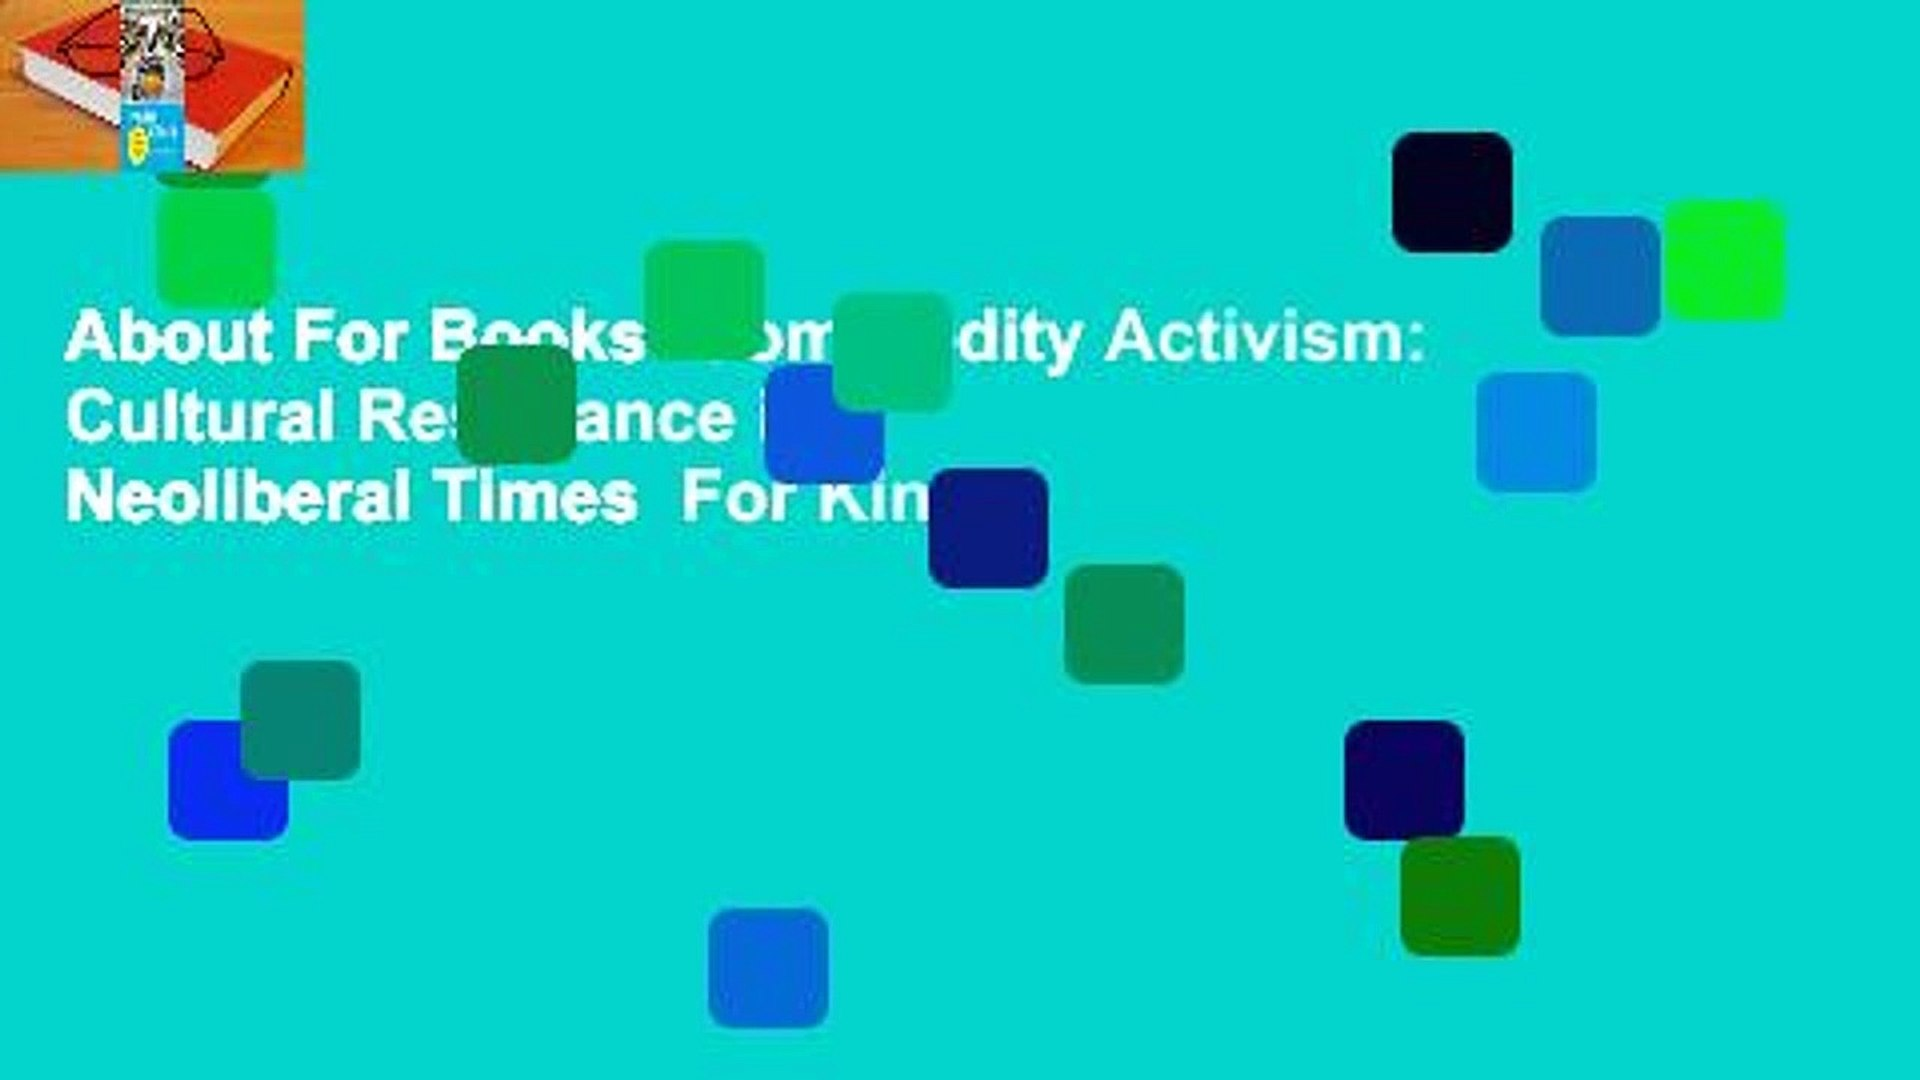 About For Books  Commodity Activism: Cultural Resistance in Neoliberal Times  For Kindle